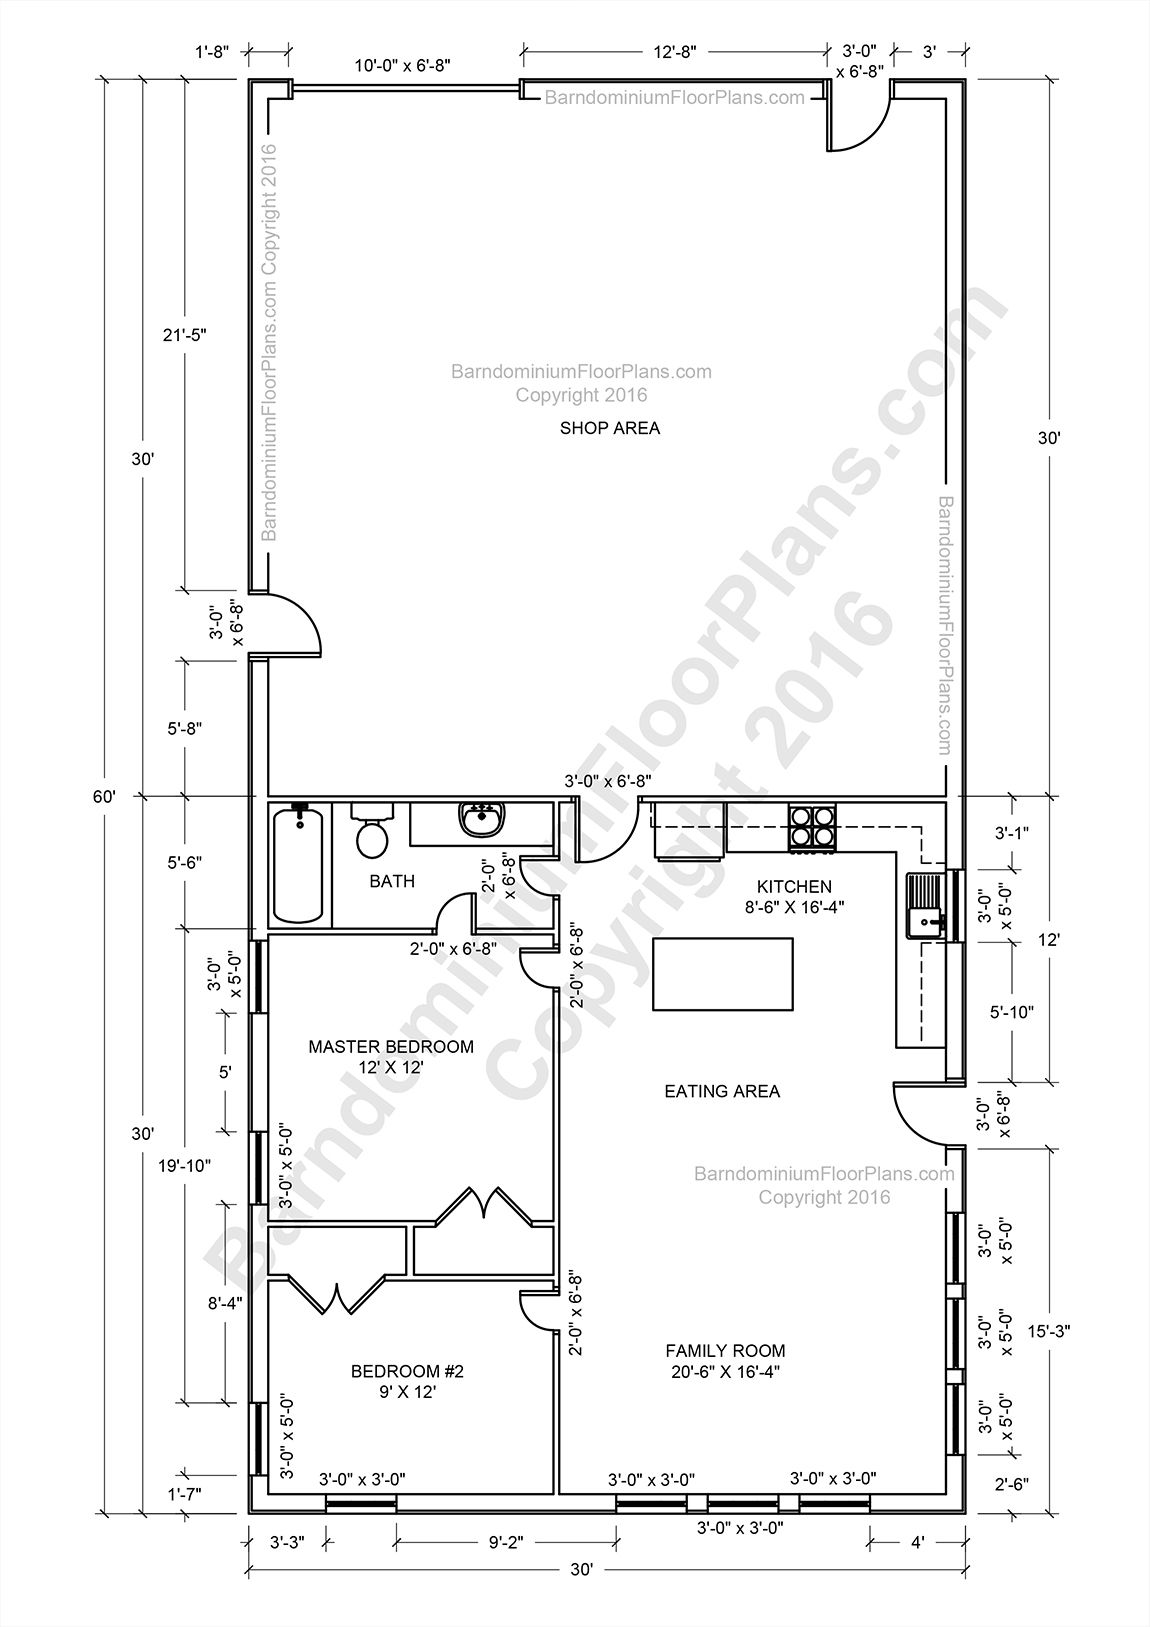 Barndominium floor plans pole barn house plans and metal for Metal pole barn homes plans